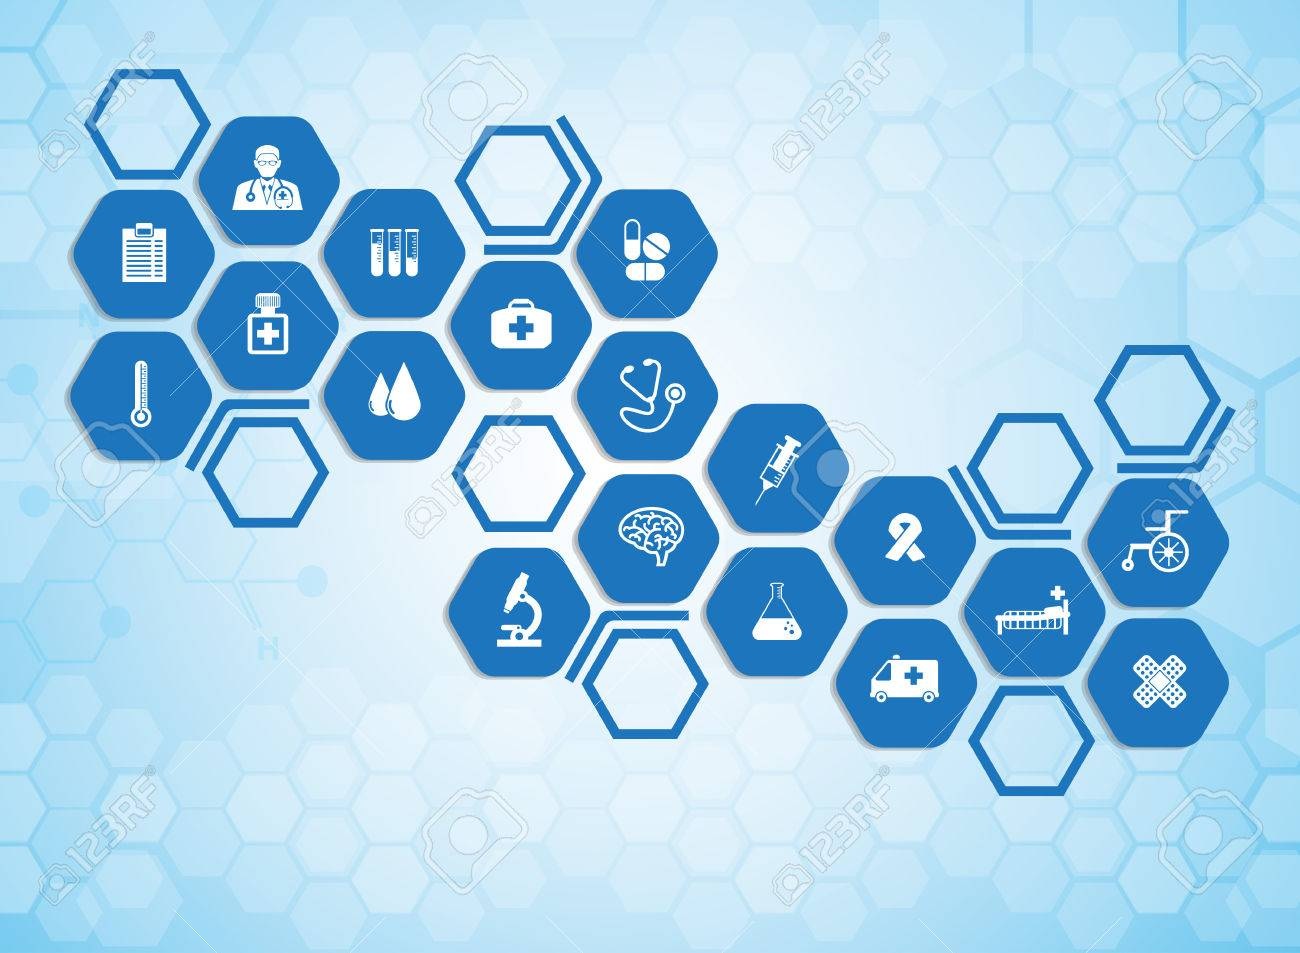 Medical background and icons to treat patients. - 40534276